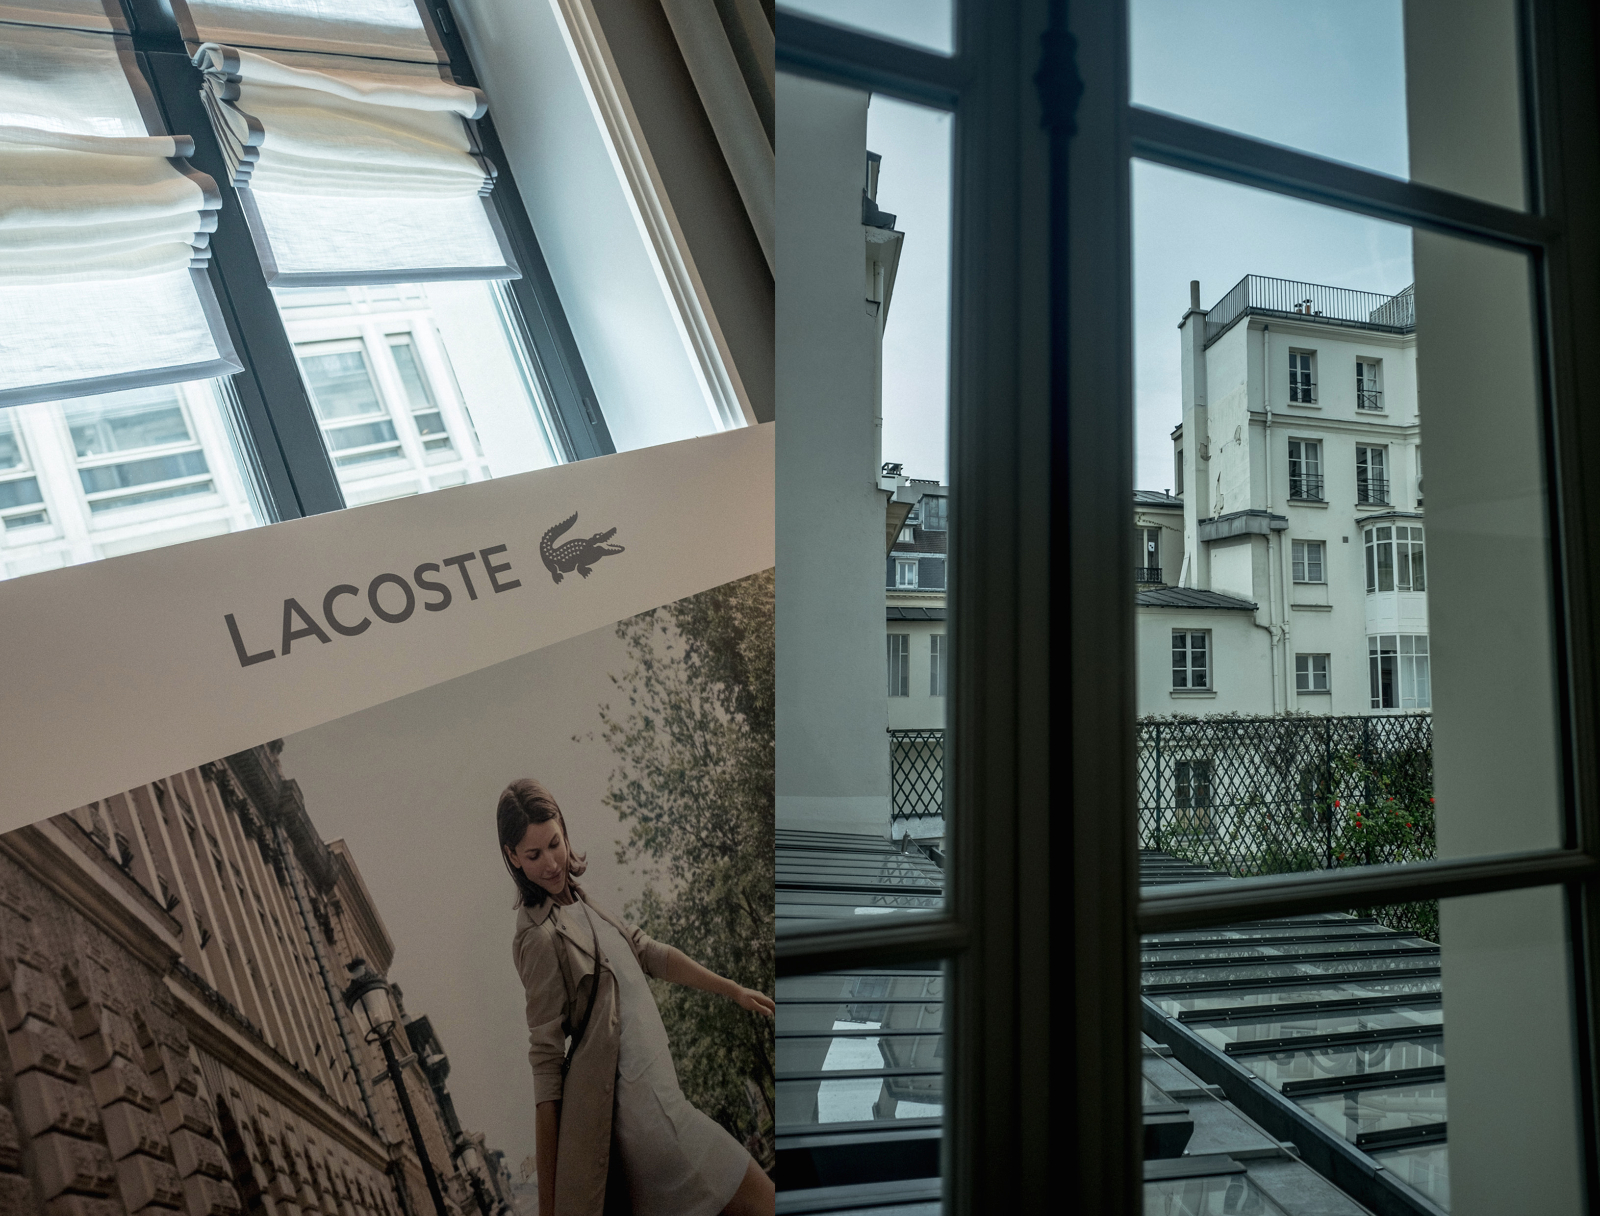 Lacoste_Paris_The-Limits-of-Control-Fashion-Fashionblogger-Blogger-Berlin-Deutschland-Modeblog-Modeblogger_Hotel_Tipp